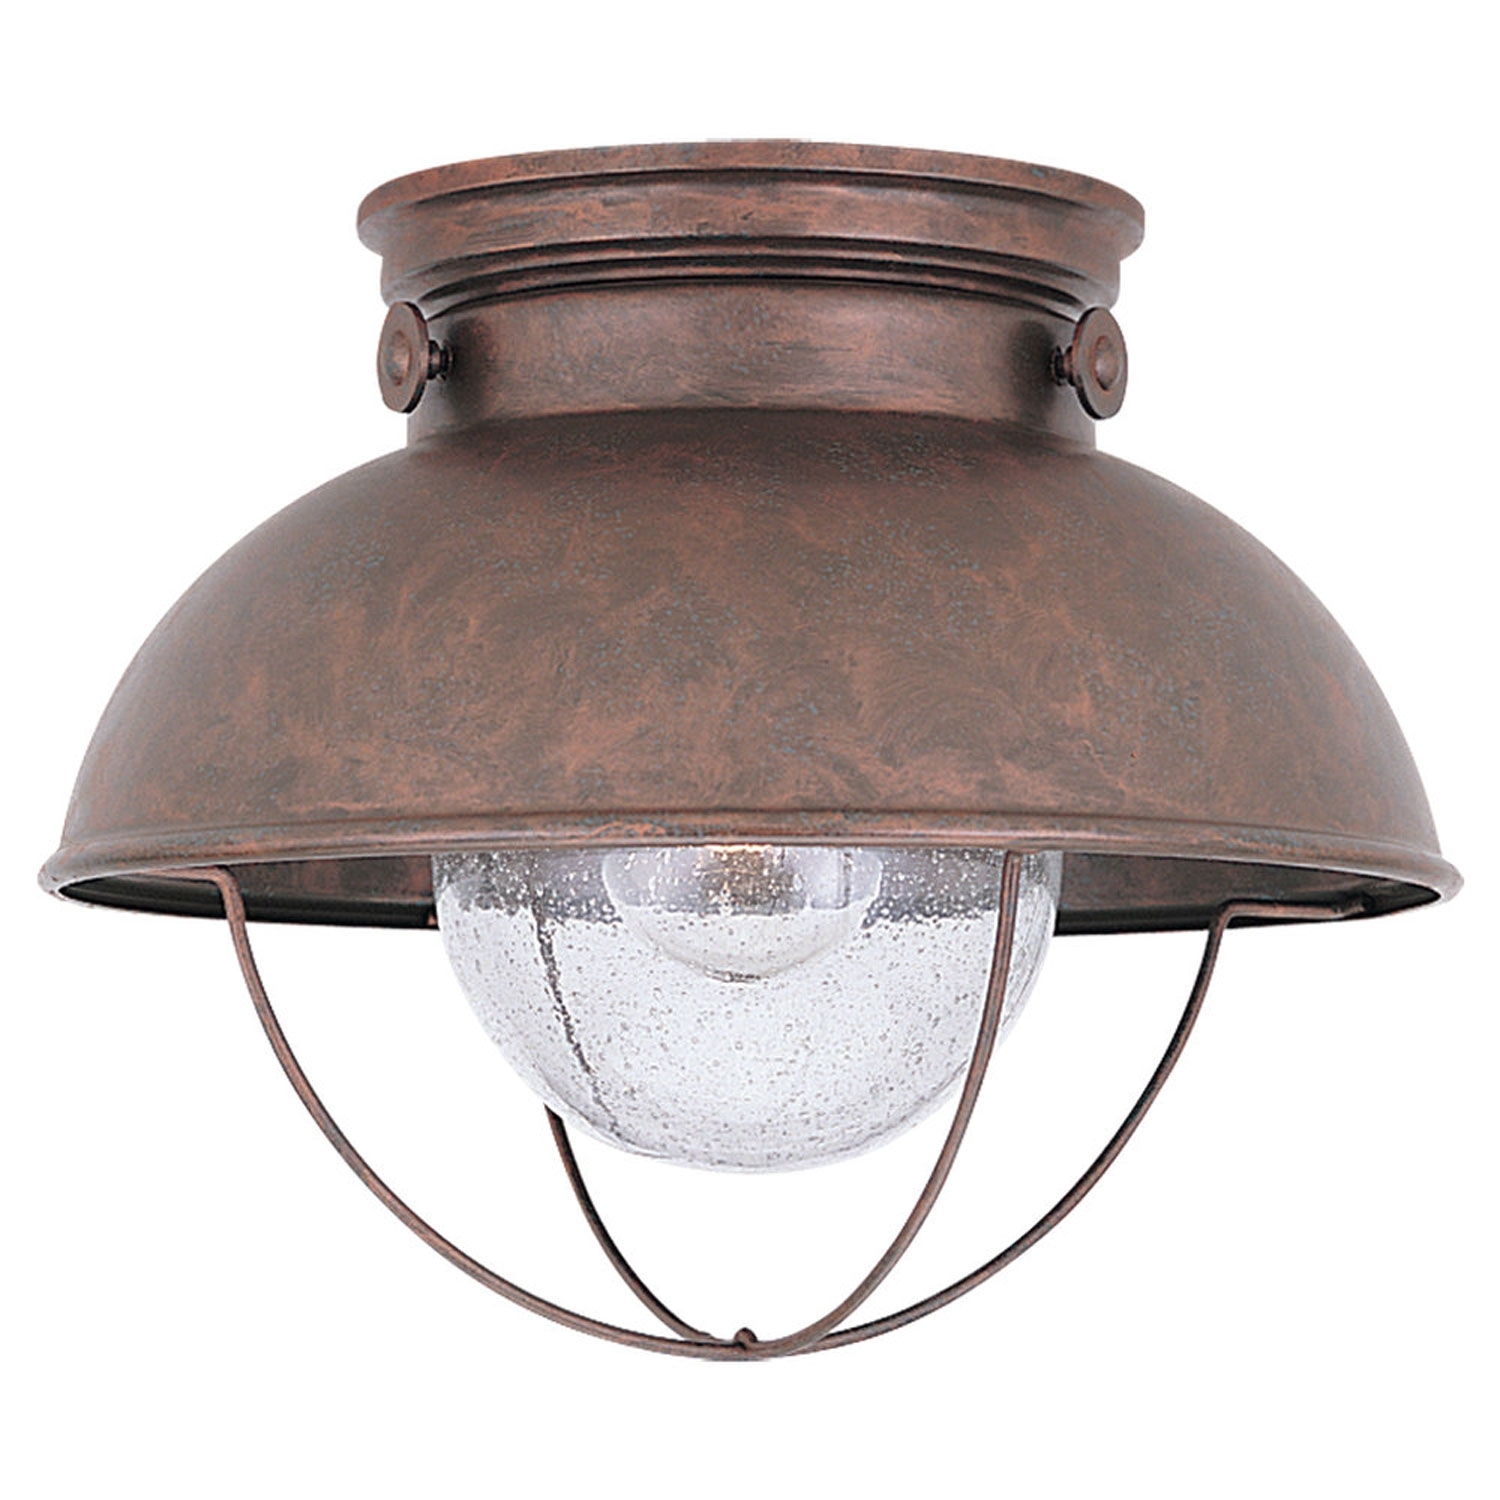 Light Fixture : Outdoor Light Fixtures Lowes Outdoor Light Fixture Inside Low Voltage Outdoor Ceiling Lights (#8 of 15)